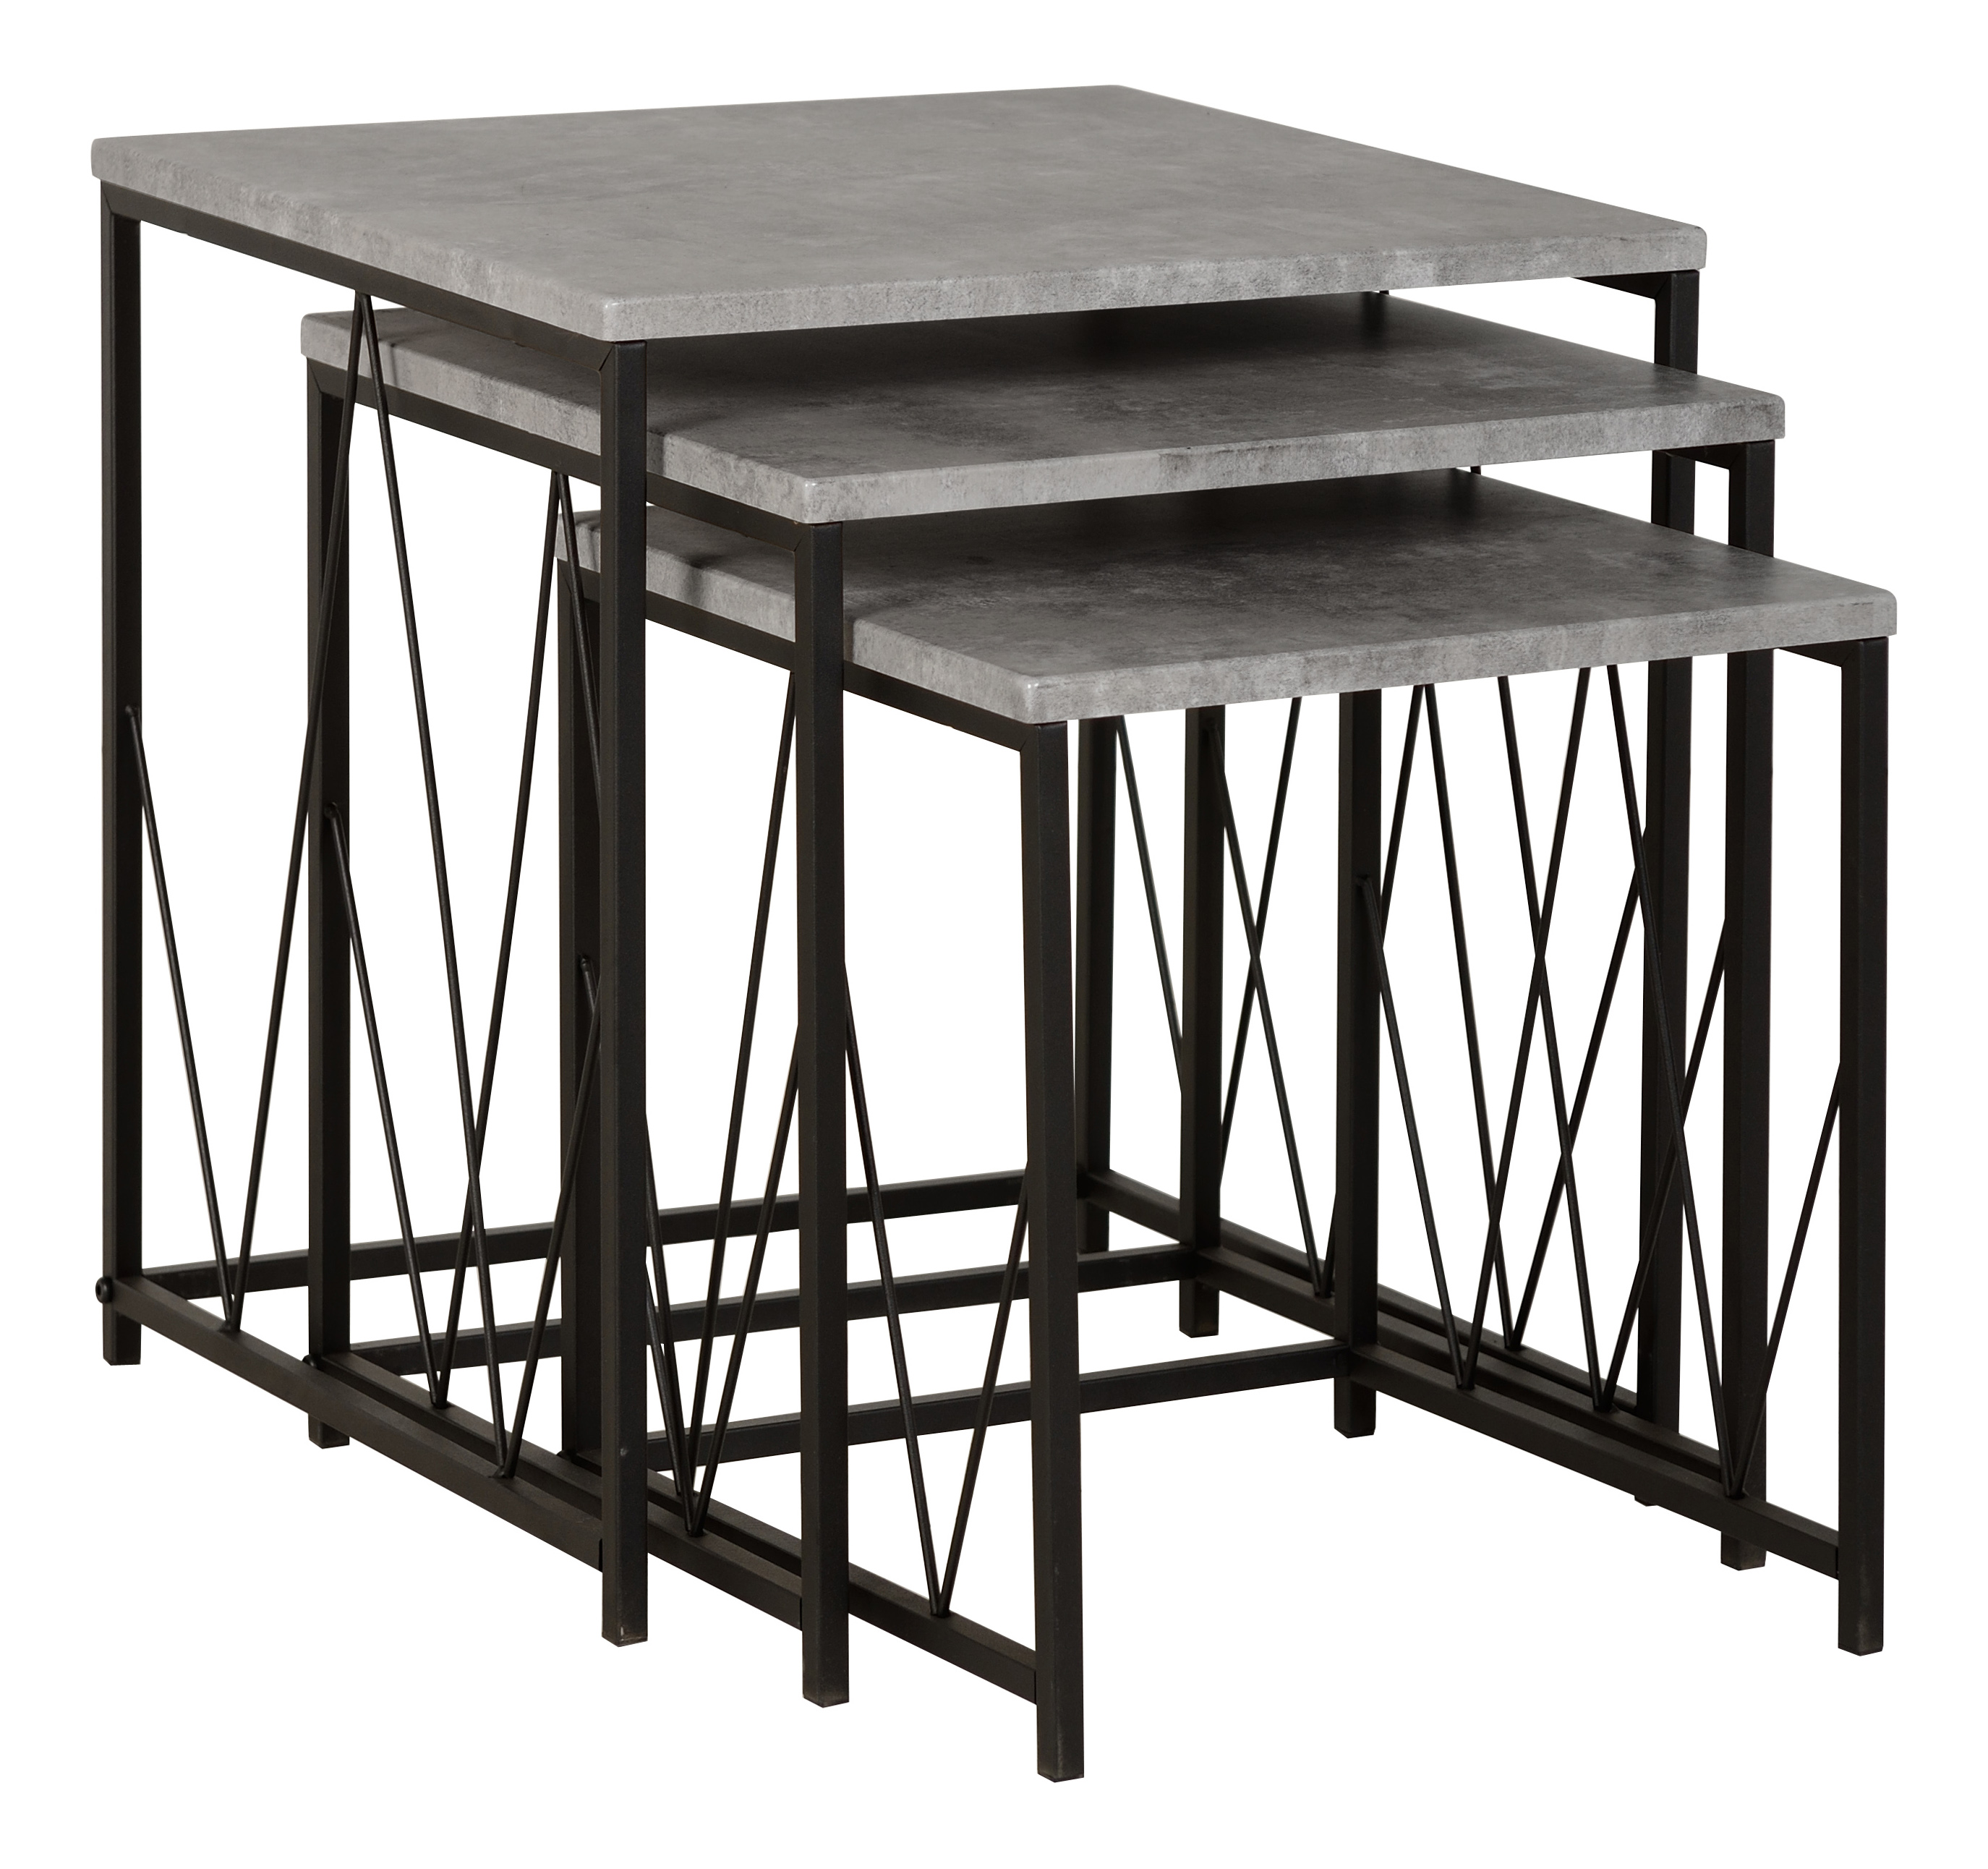 Details about athens nest of tables in concrete effect black dining living room furniture